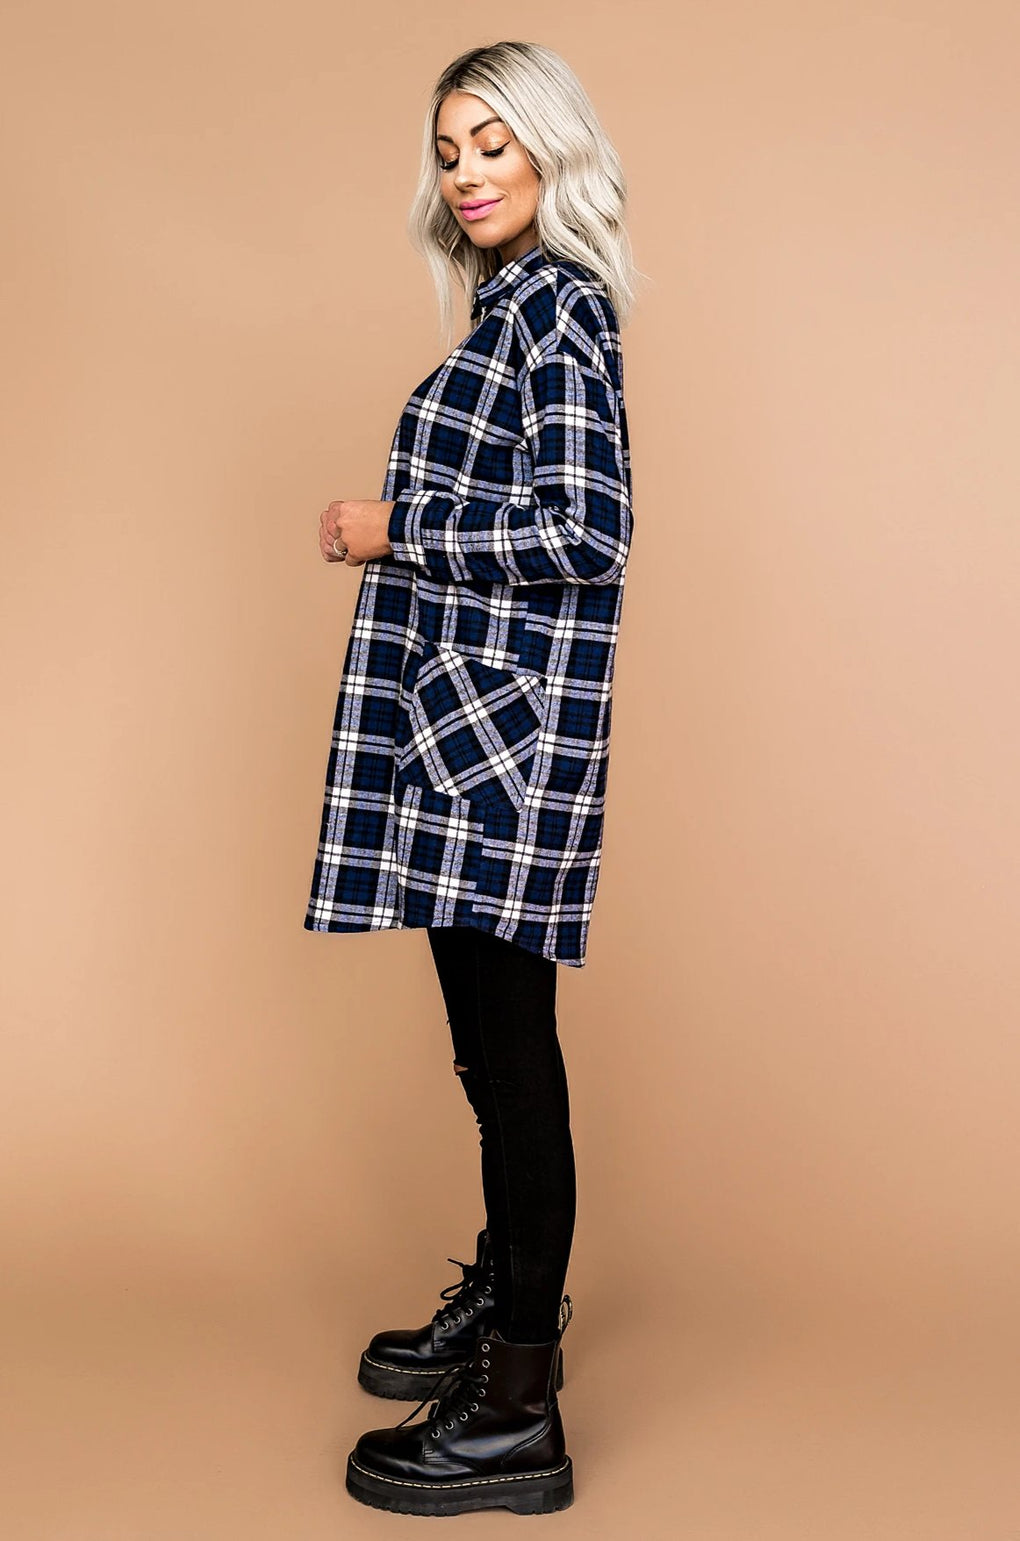 Saturdaze Plaid Grunge Tunic